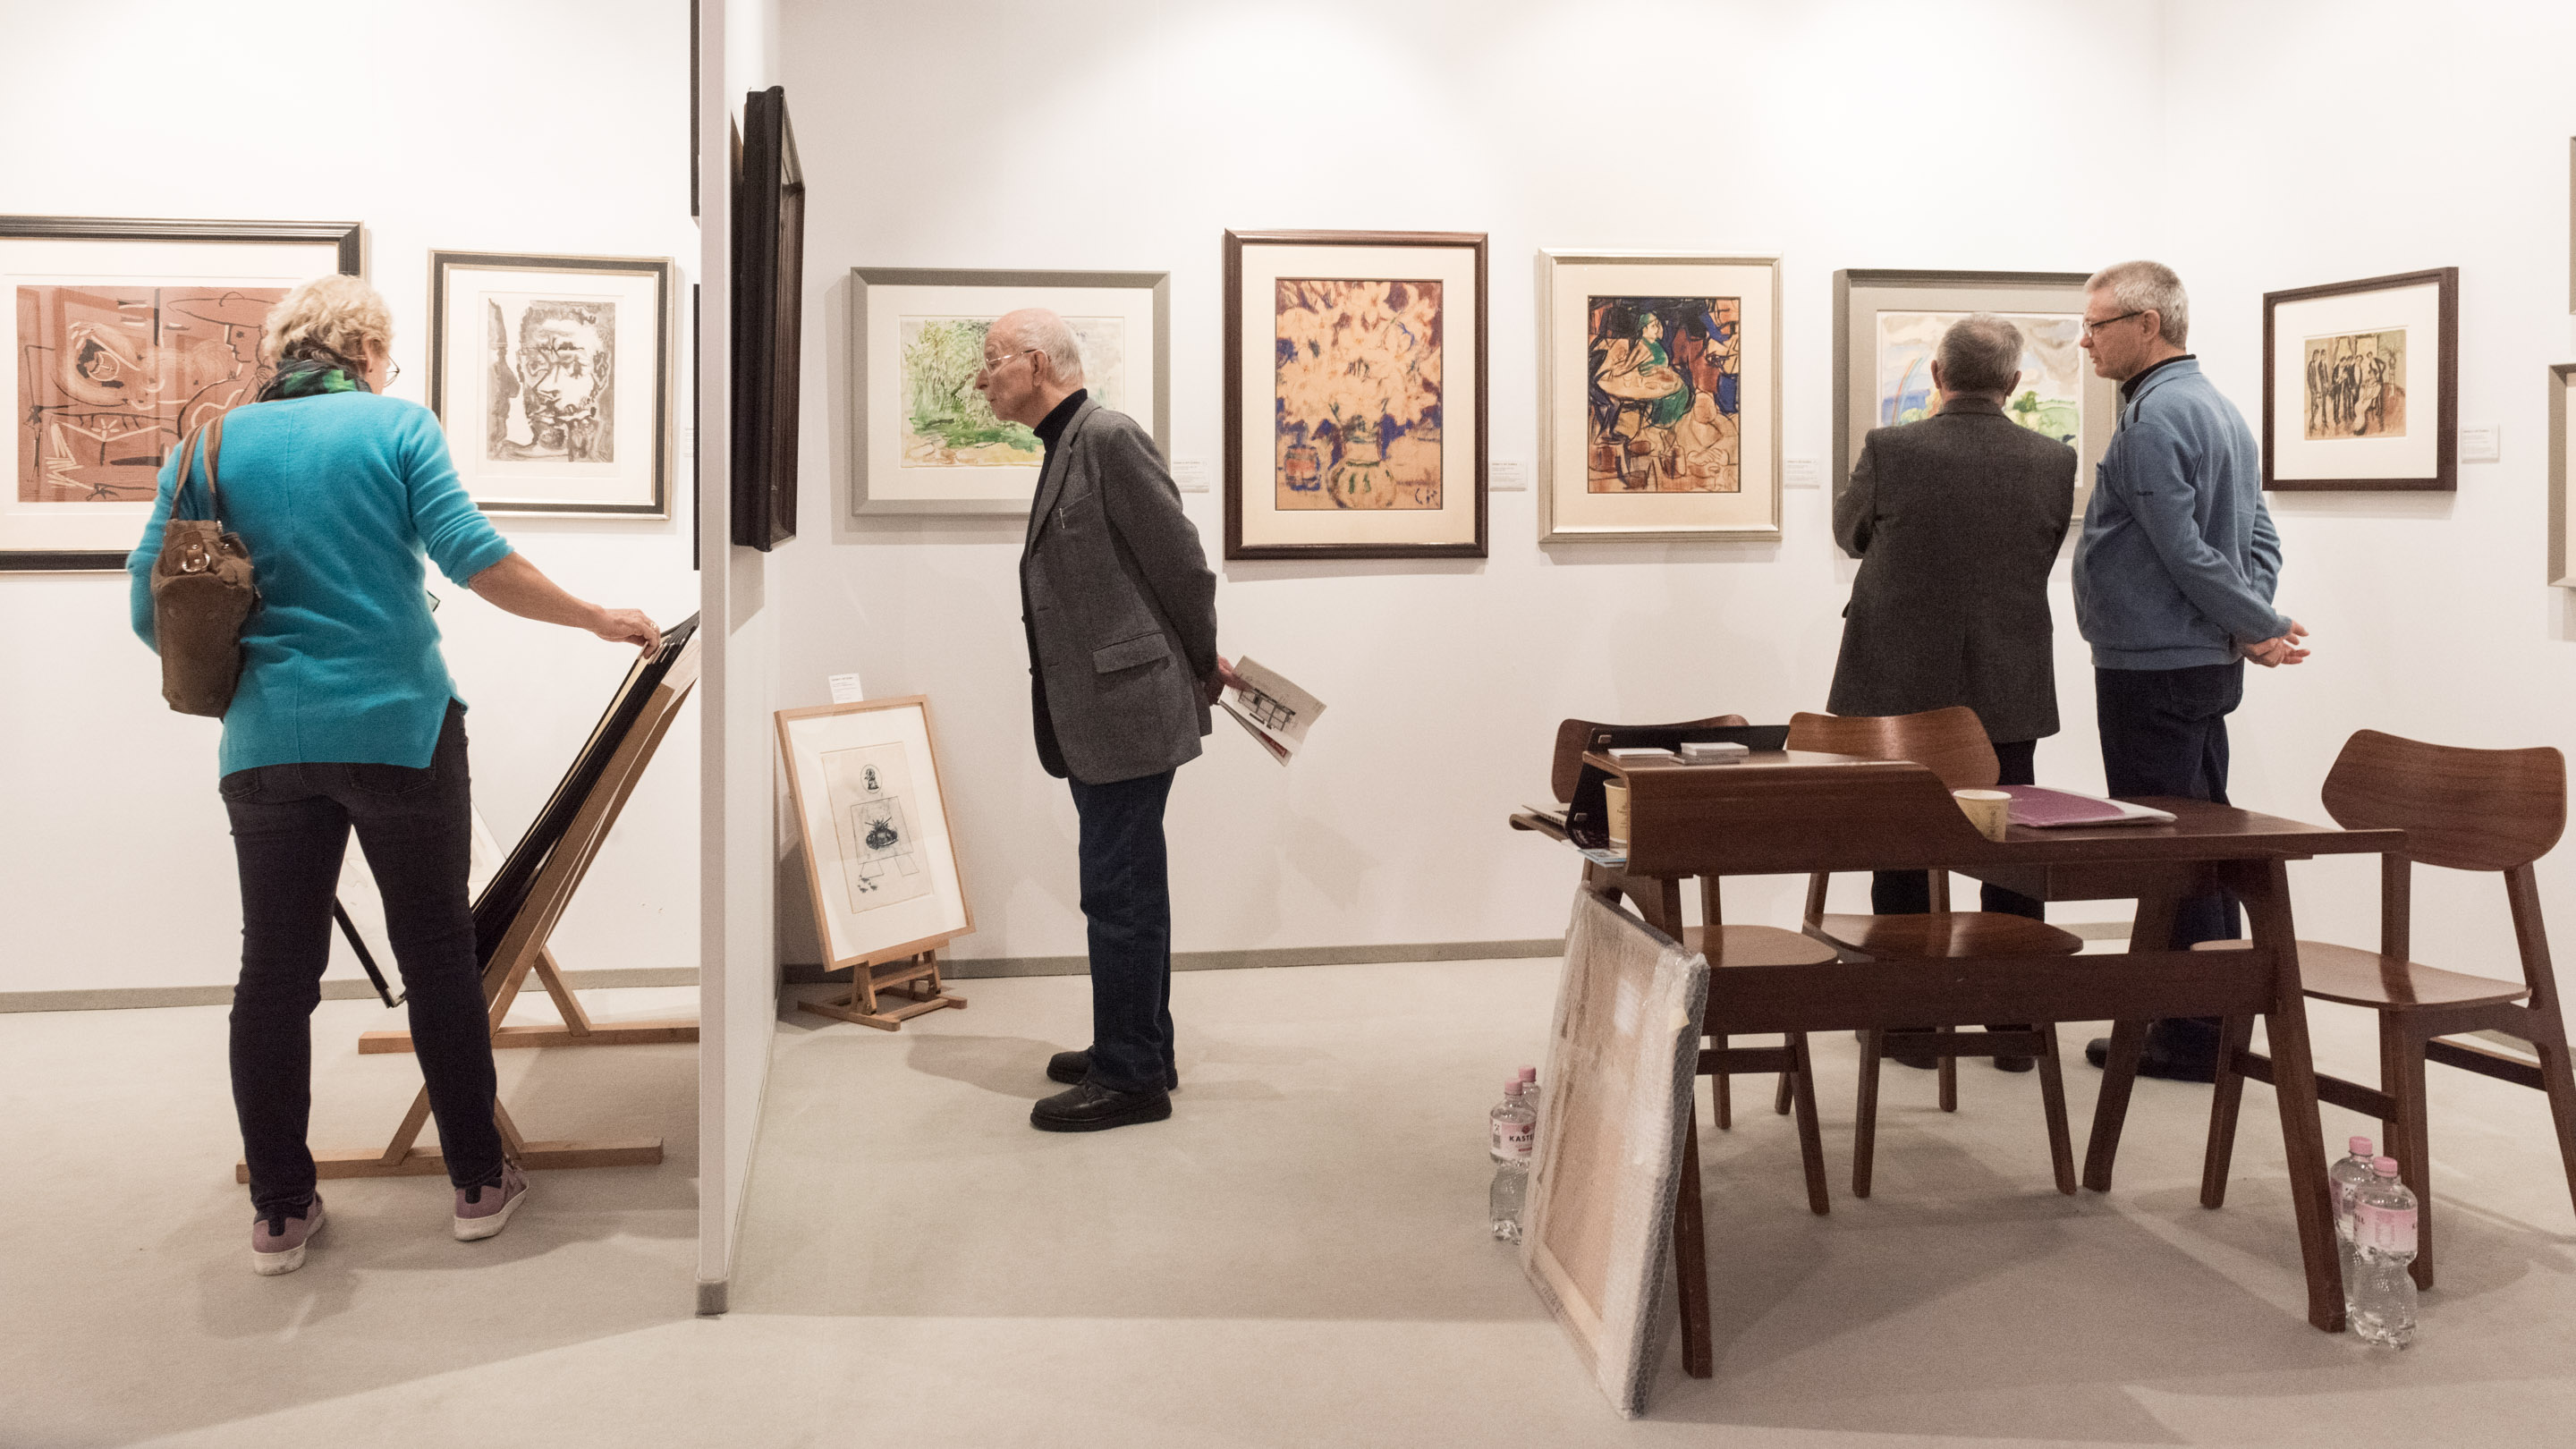 Stand: Gilden´s Arts, Halle 11.2, Cologne Fine Art & Design 2019